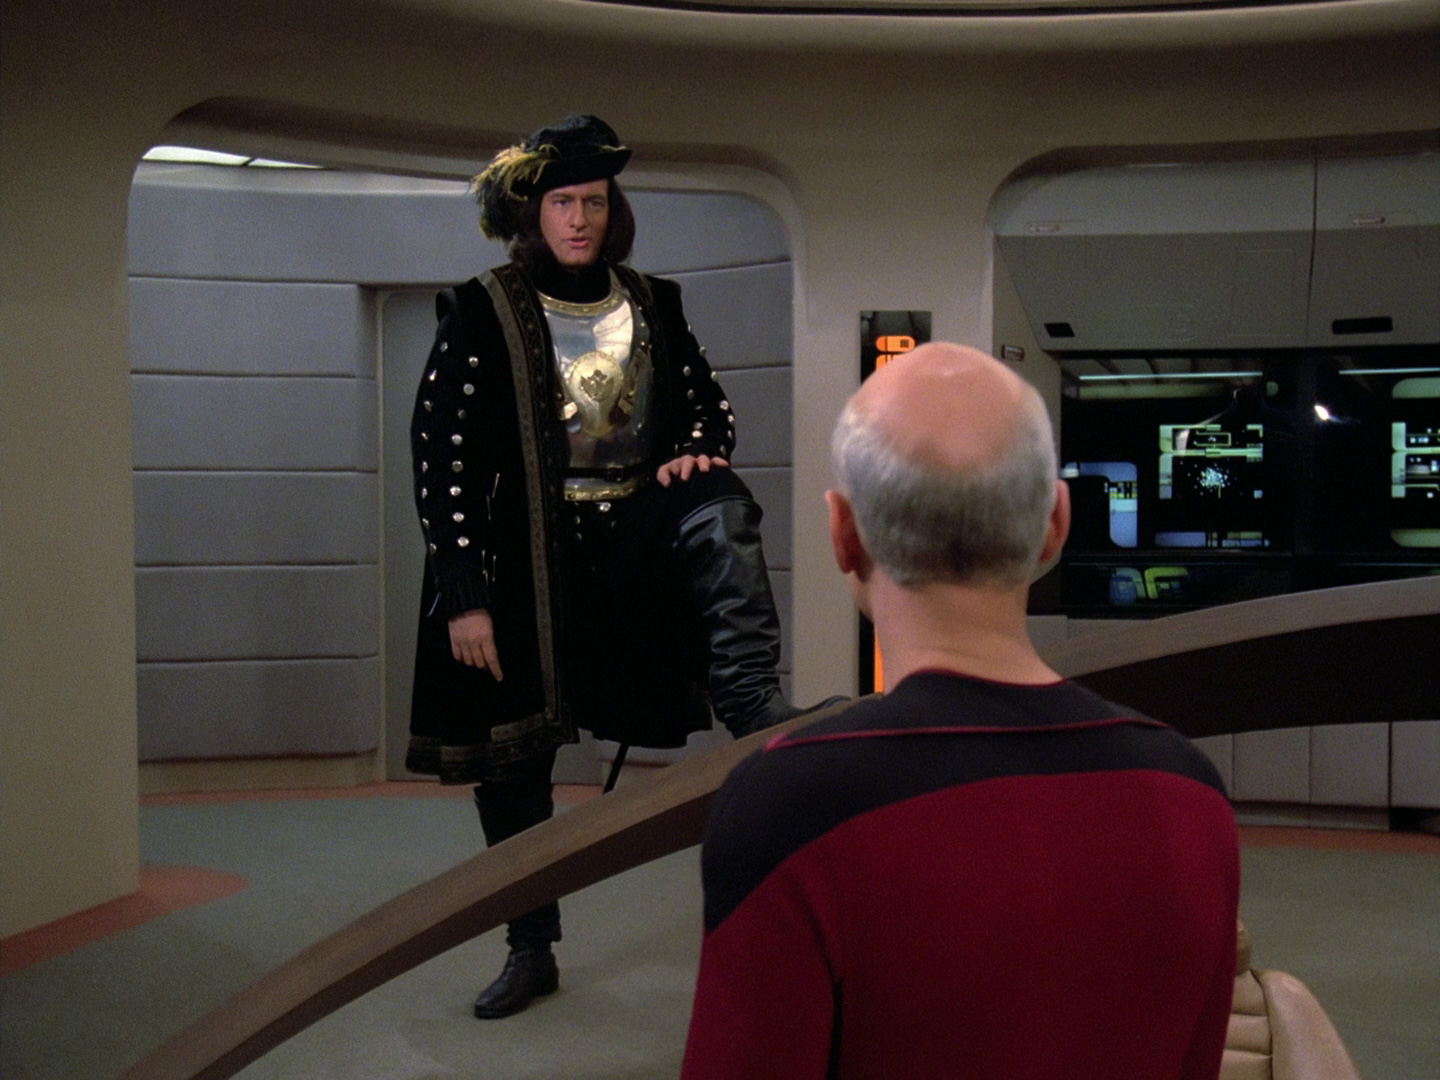 On the other hand, The Motion Picture didn't have this image. (Source: TrekCore)